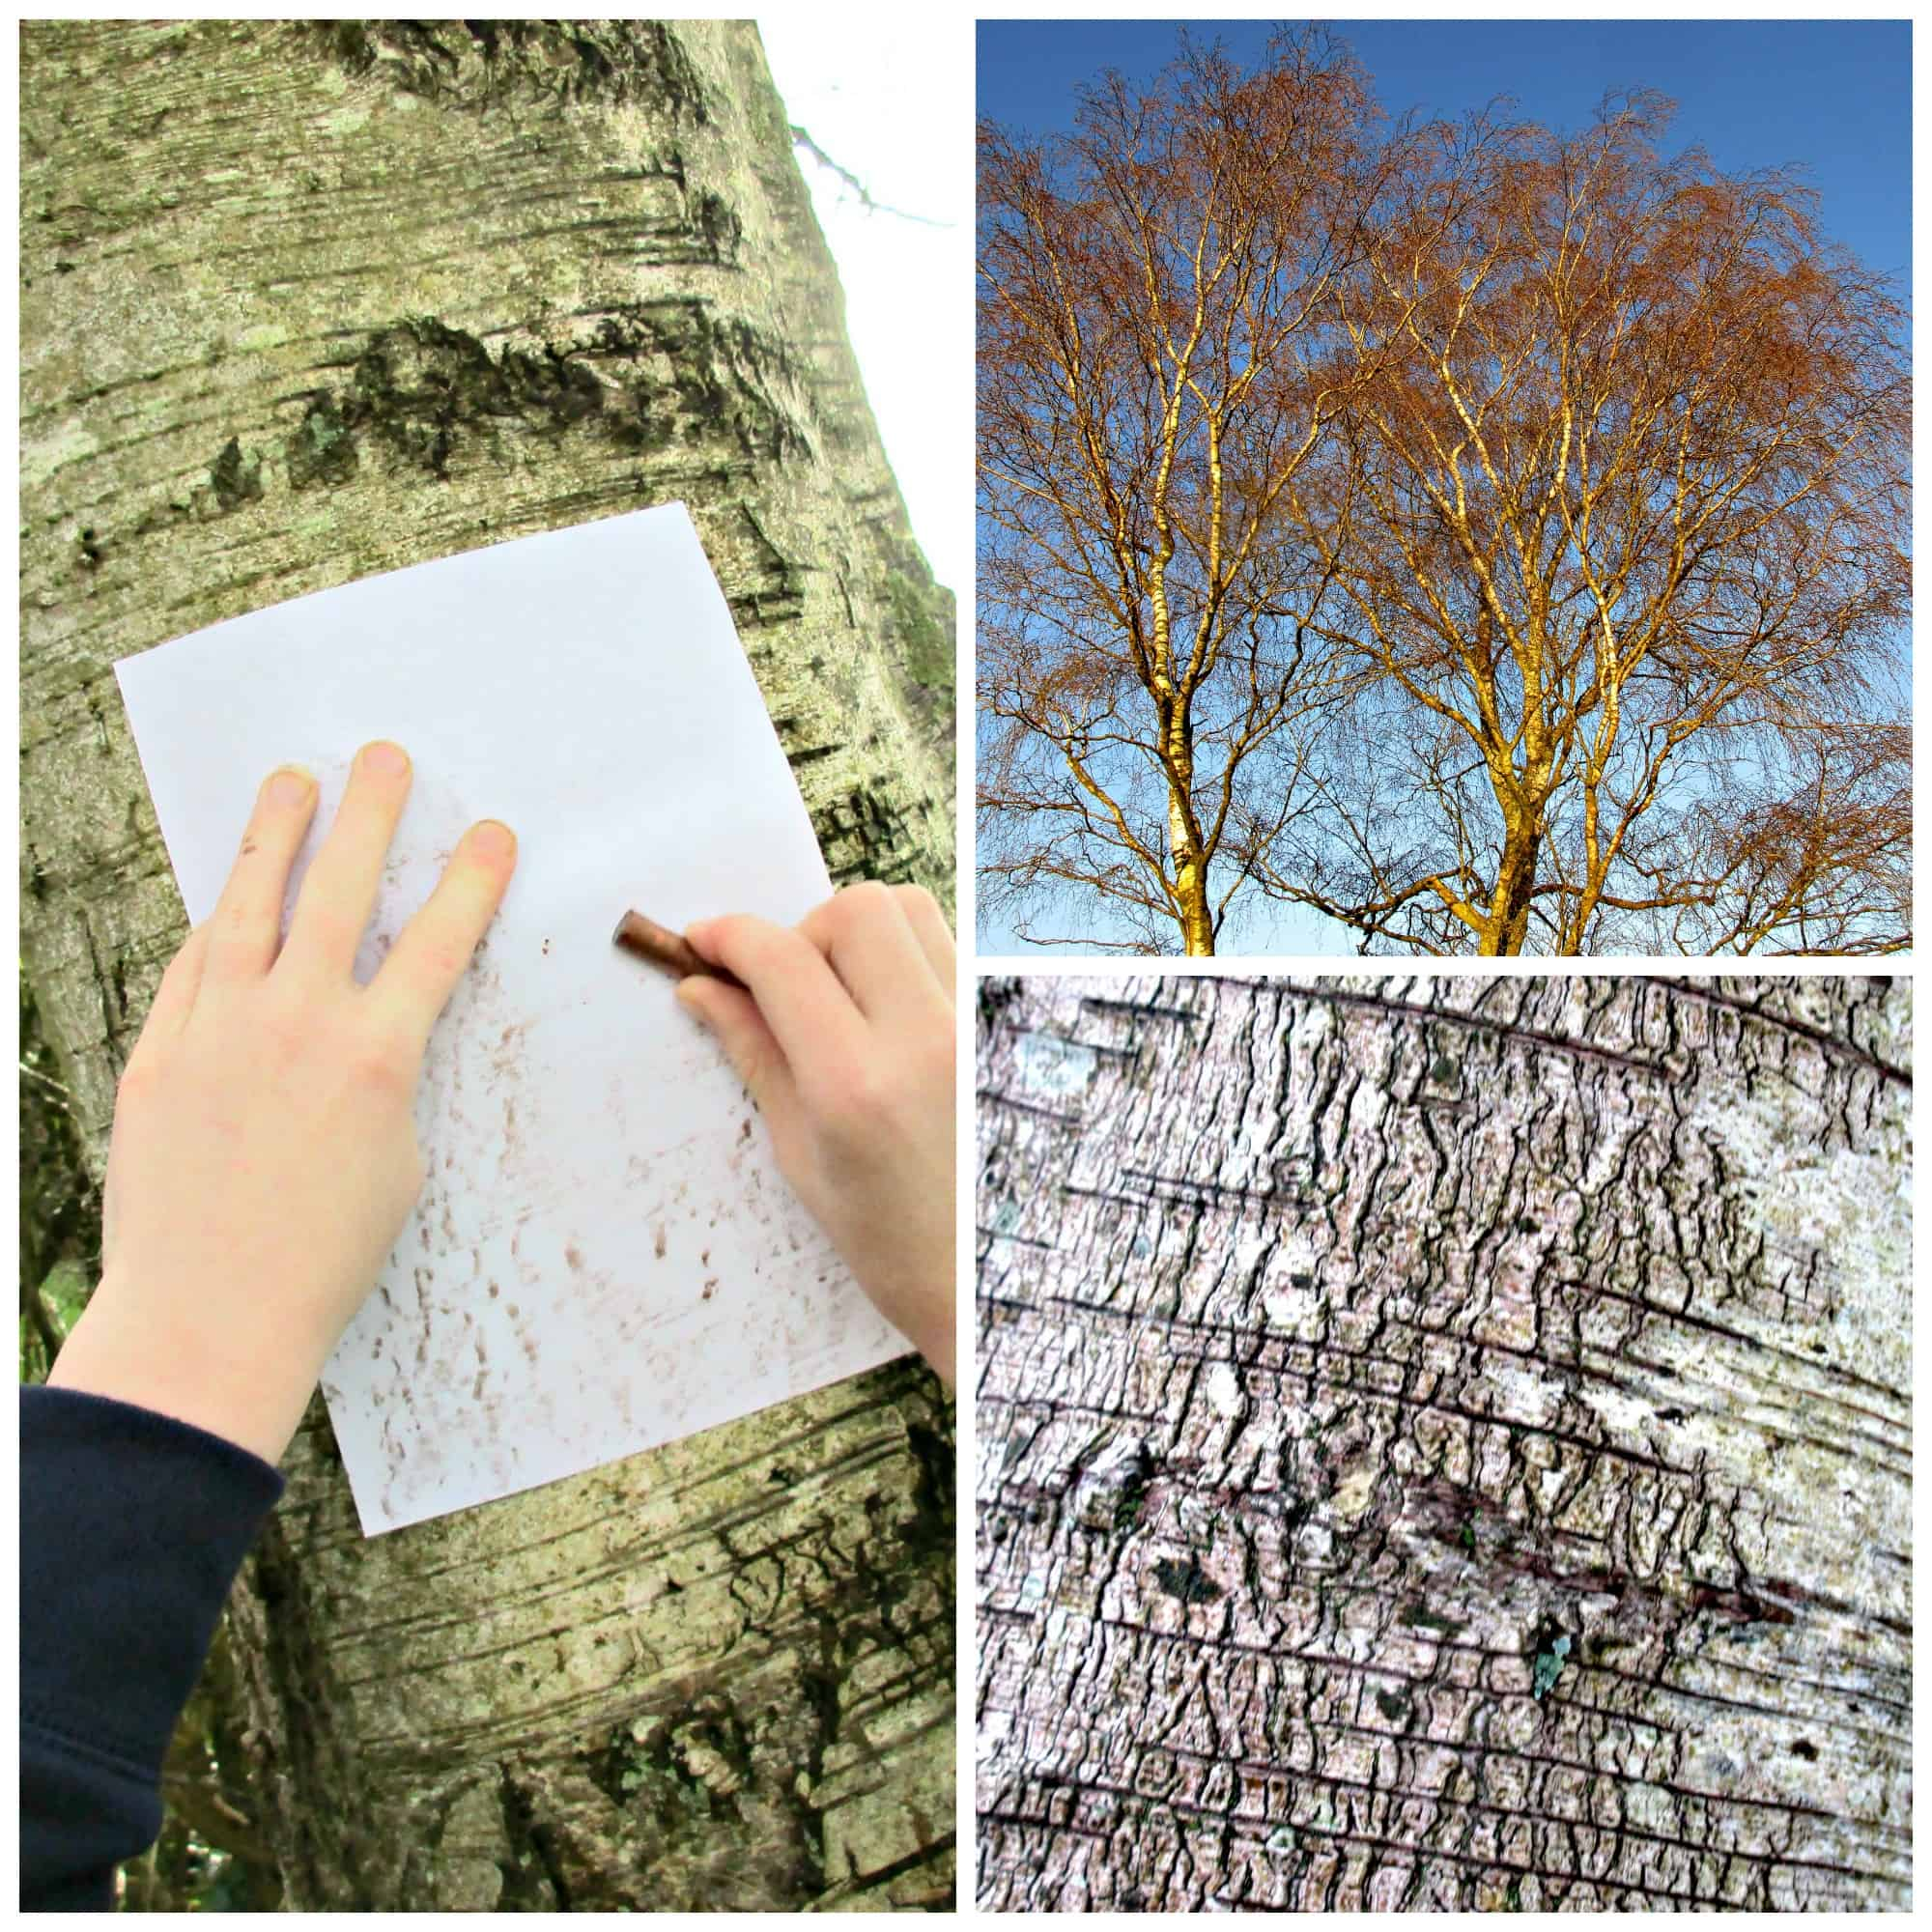 How to Make a Tree Bark Rubbing • Craft Invaders